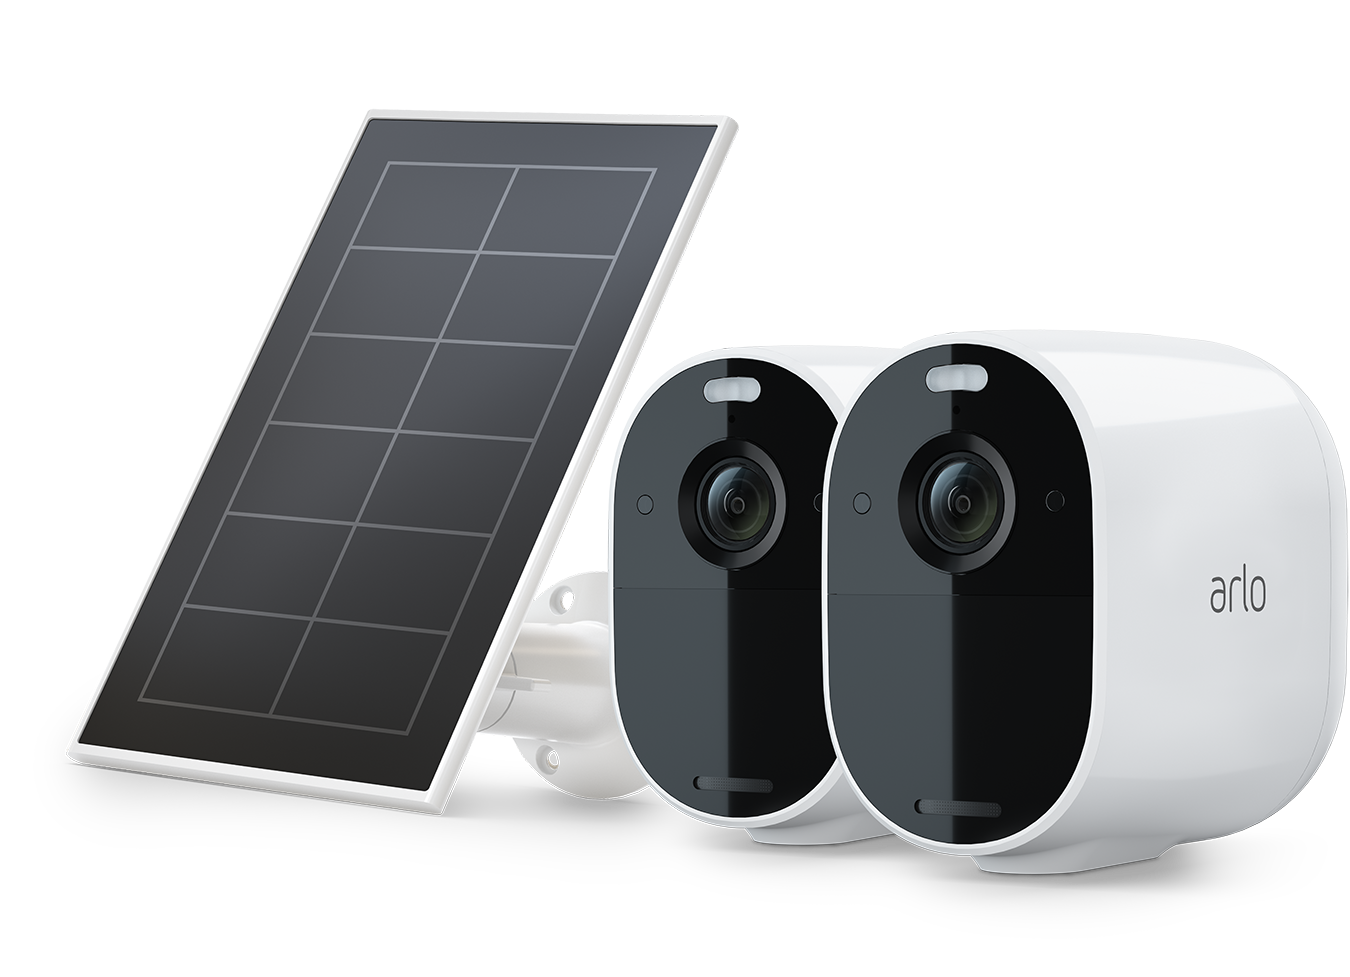 2-Pack Arlo Essential 1080p Wireless Security Cameras with Solar Panel for $179.99 + Free Shipping